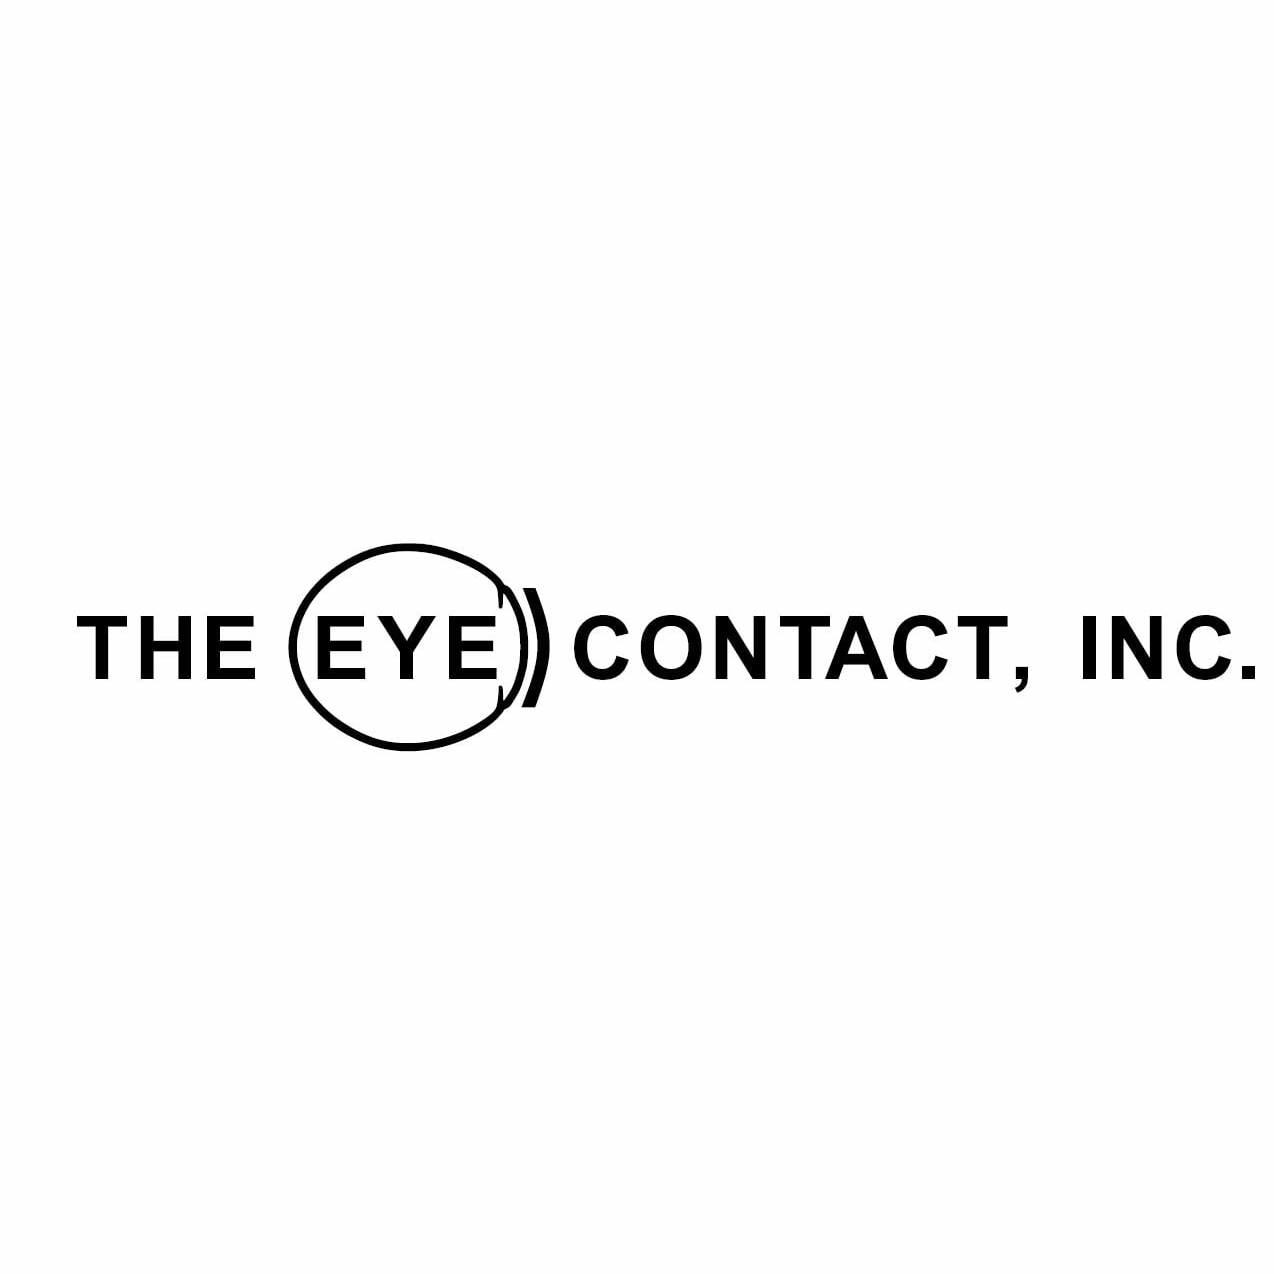 The Eye Contact, Inc.